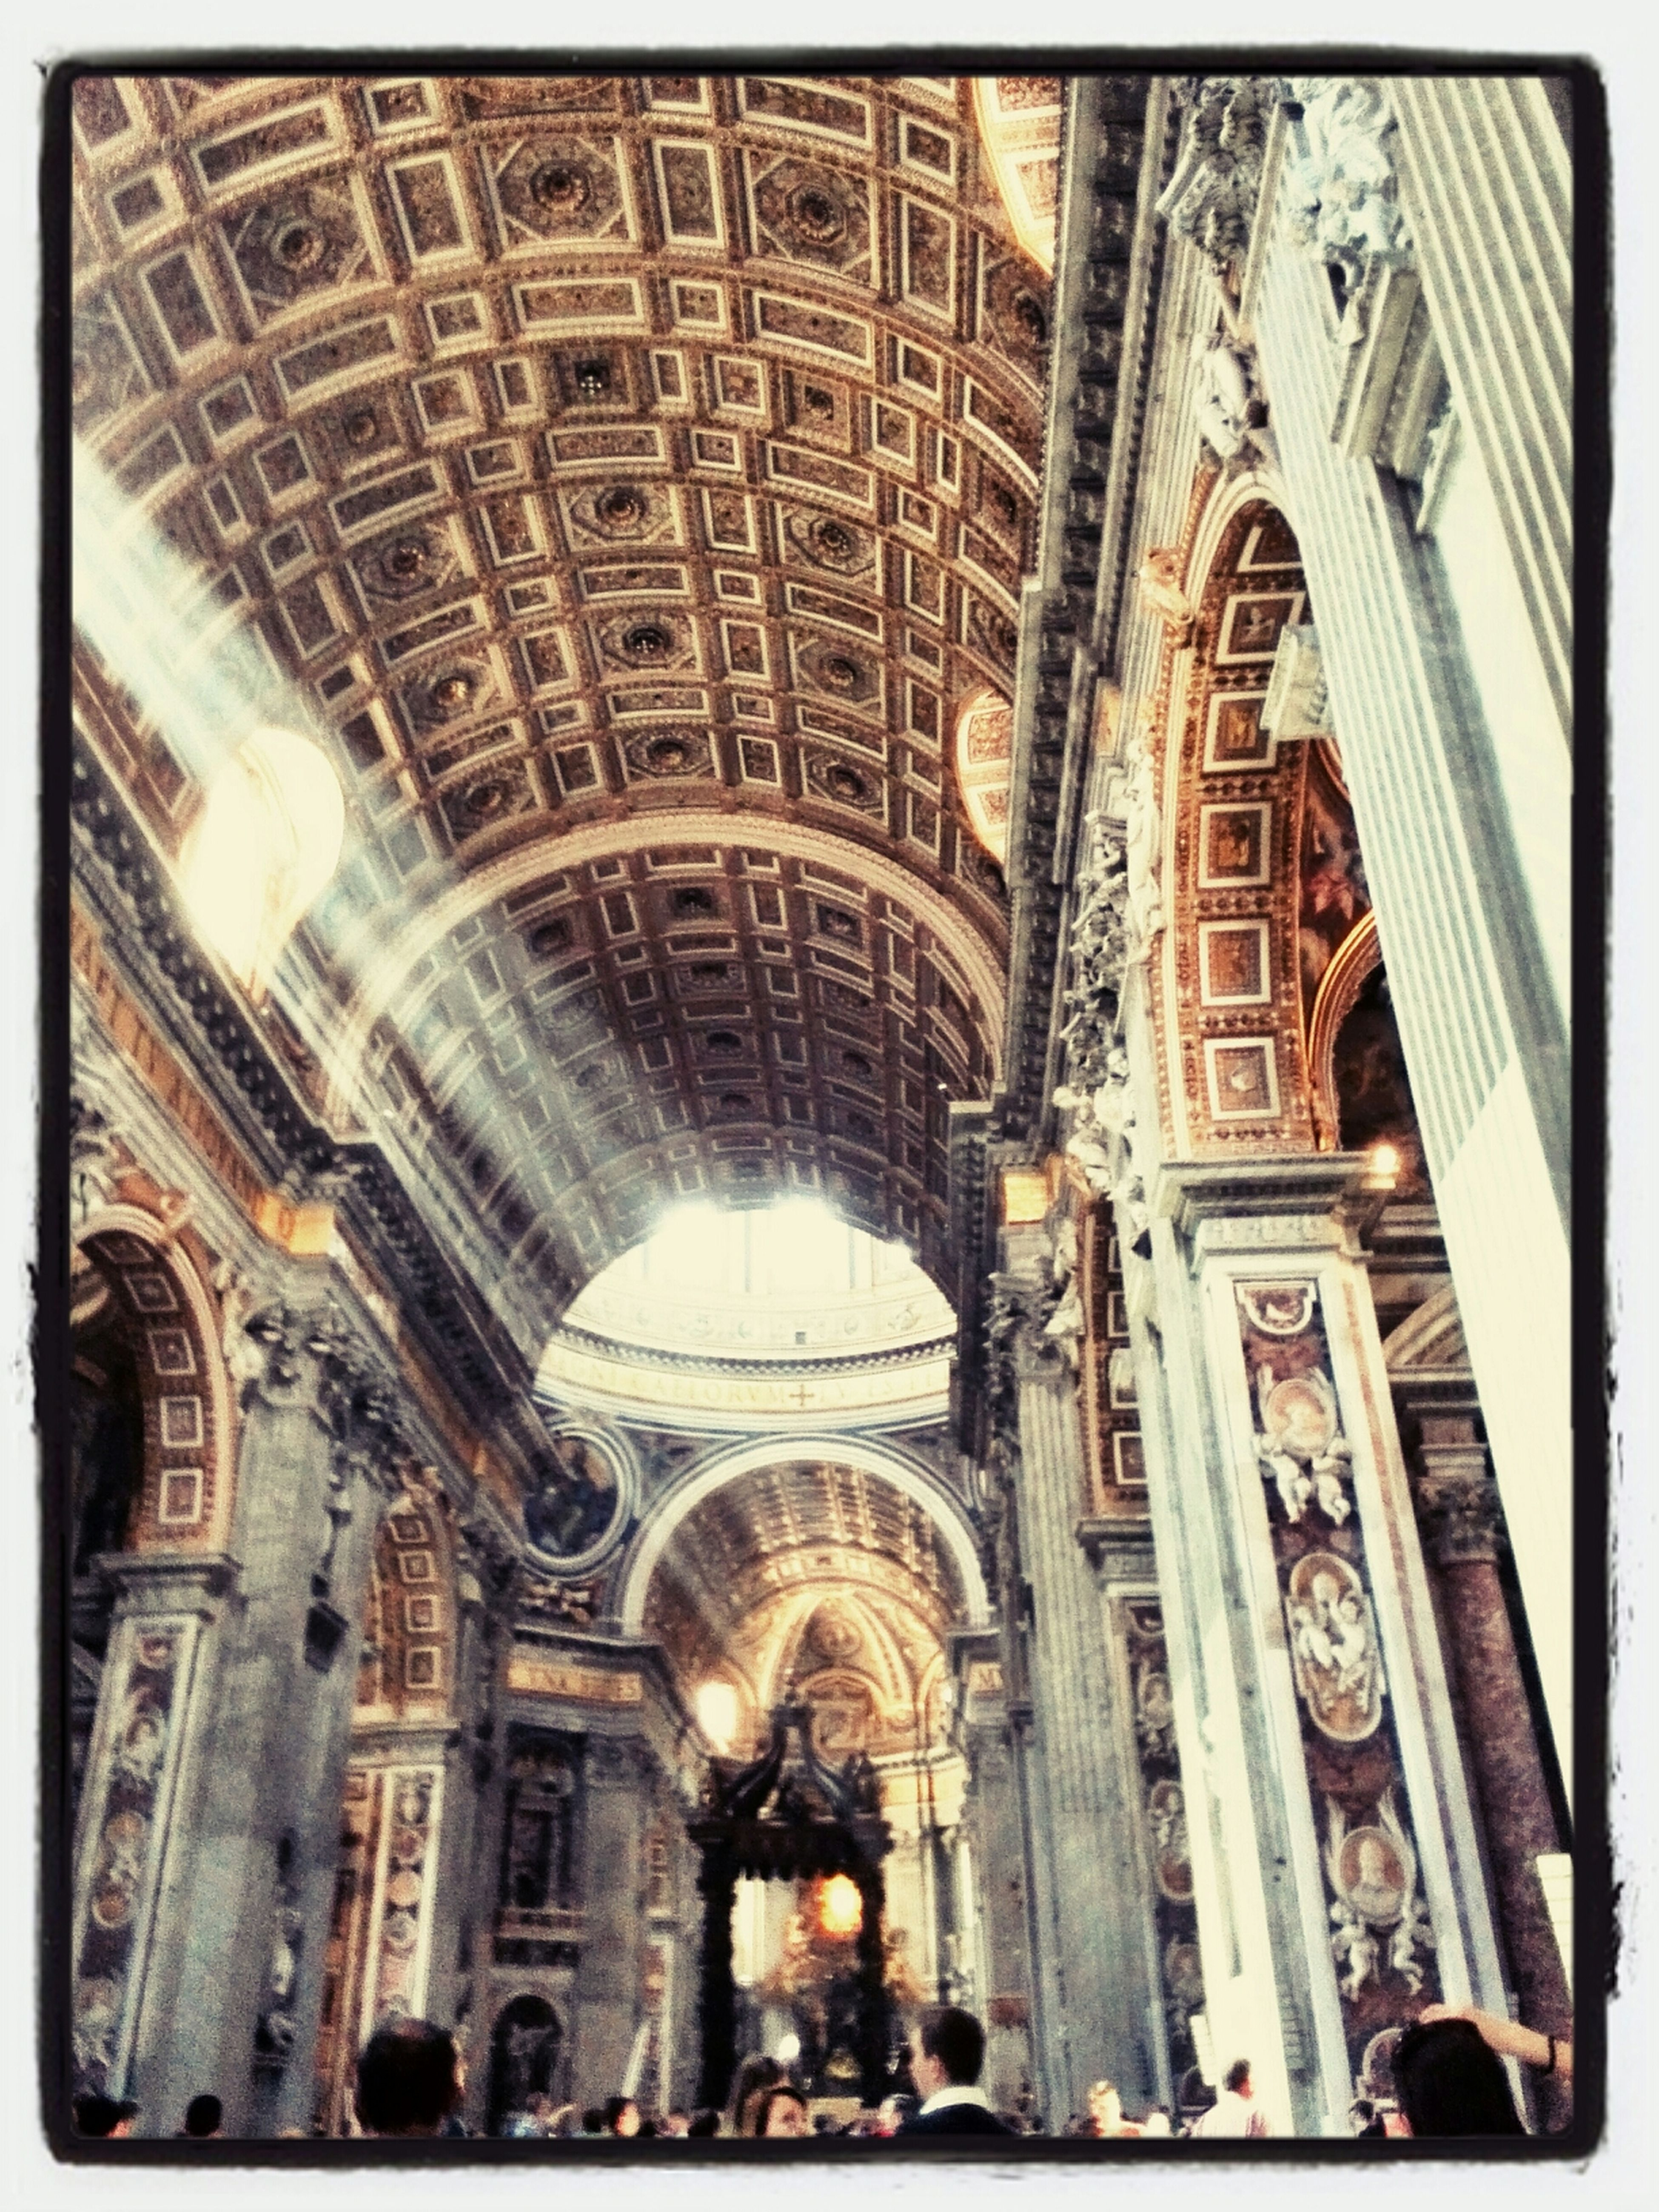 Italie St.Pietersbasilik Vatican City Taking Photos The Architect - 2016 EyeEm Awards